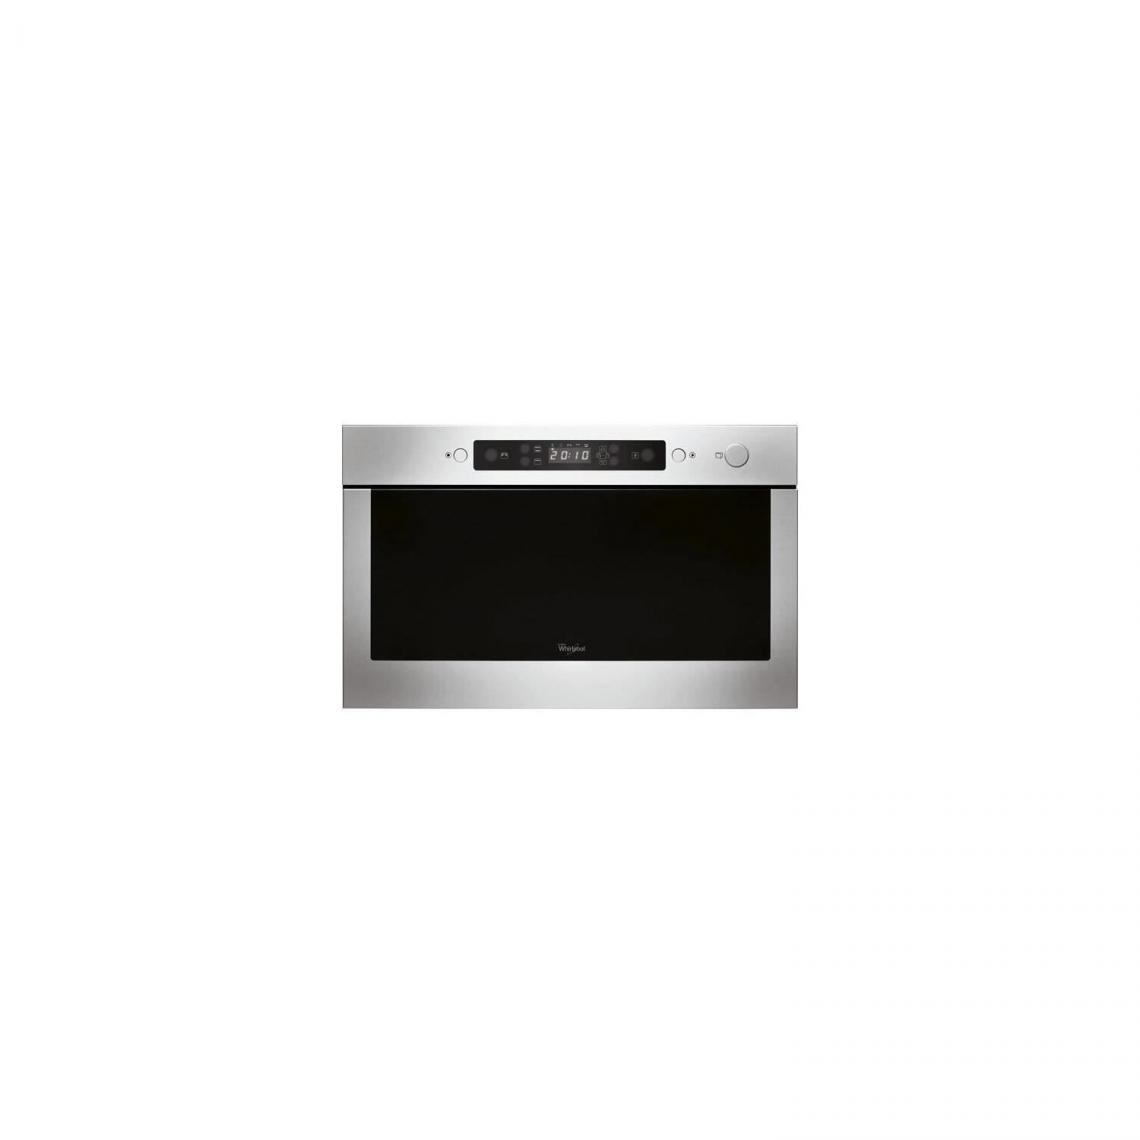 whirlpool WHIRLPOOL AMW423IX - Micro-ondes encastrable - 22L - 750W - Gris